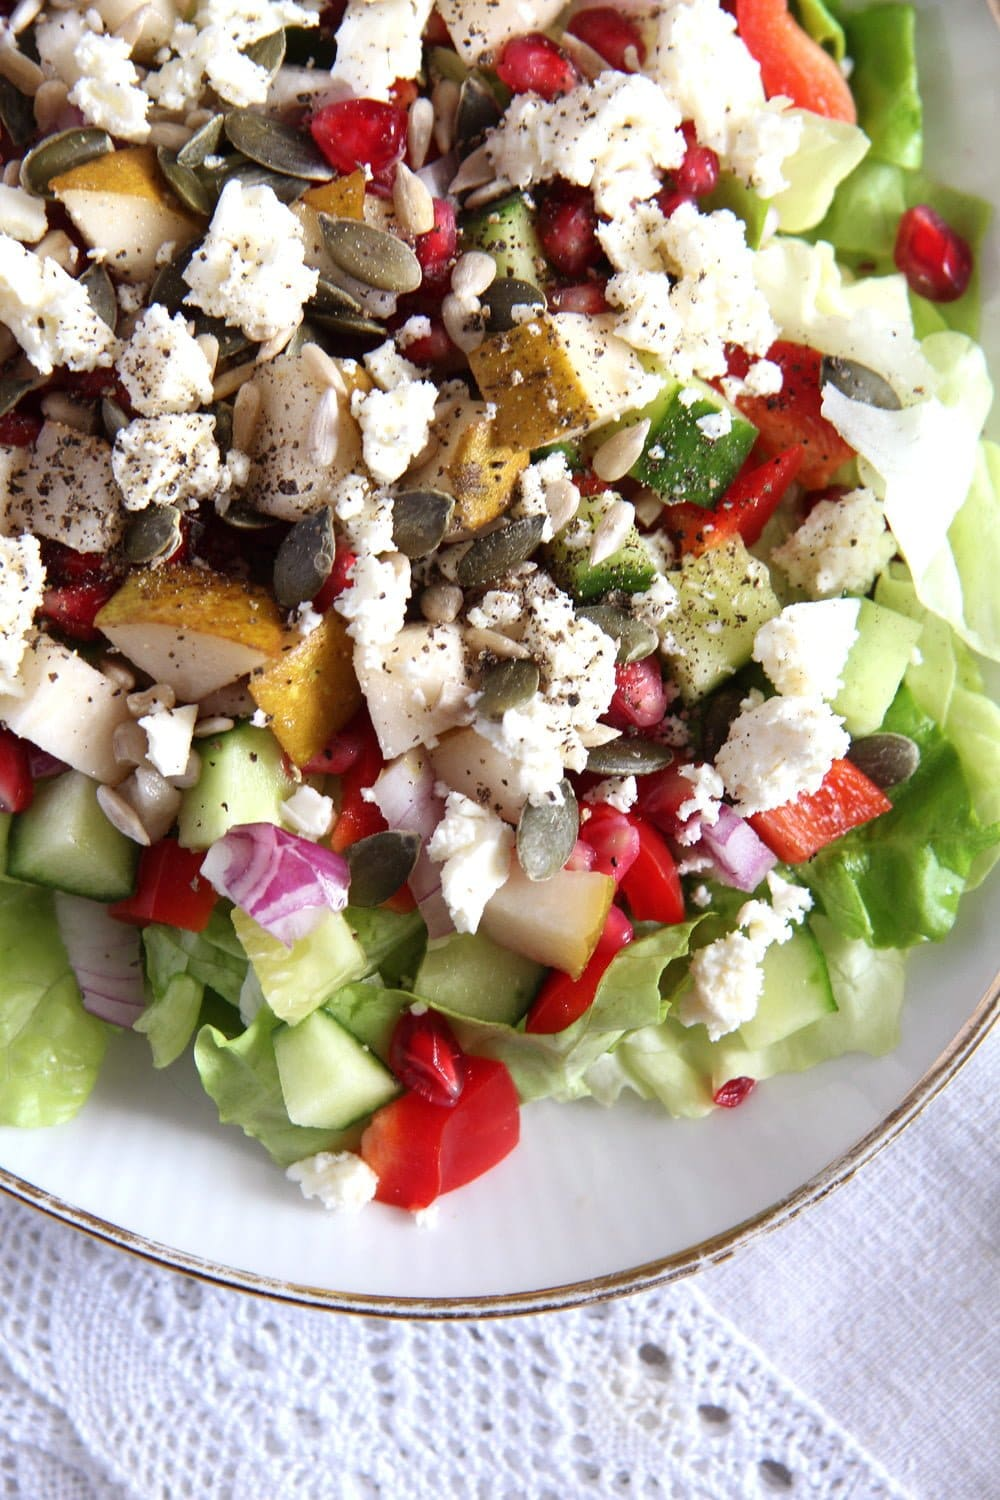 salad pomegranate autumn Autumn Salad with Apples, Pears and Seeds